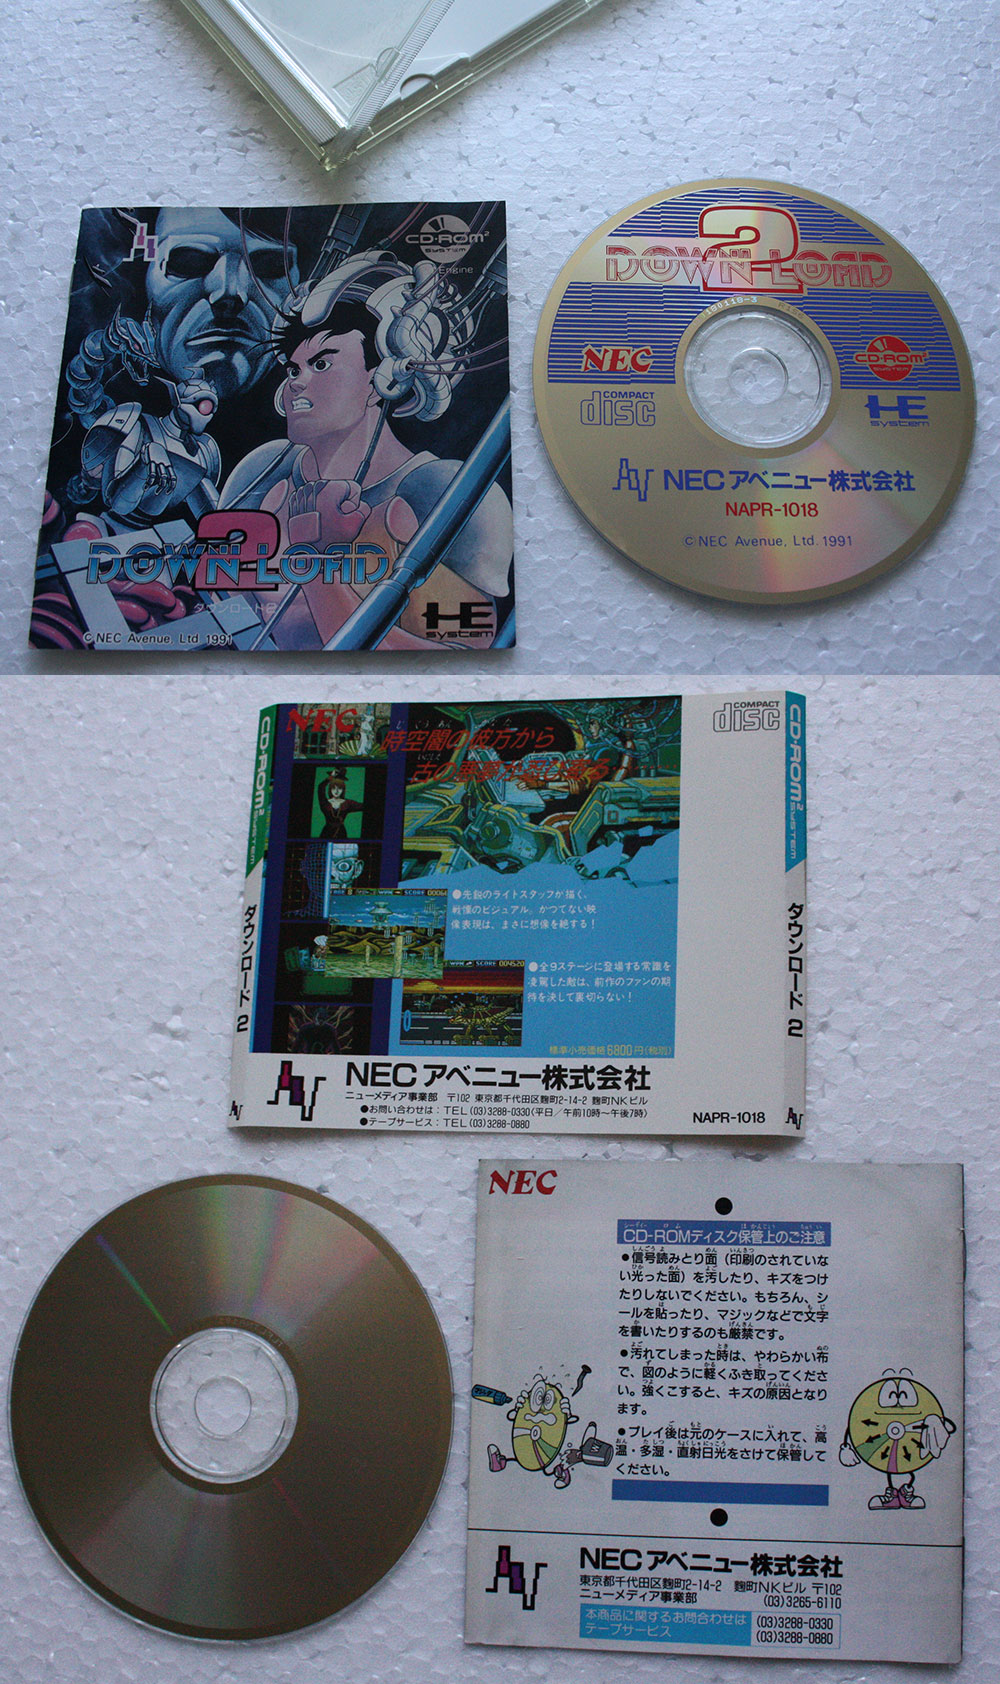 Download 2 from NEC Avenue - PC Engine CD ROM